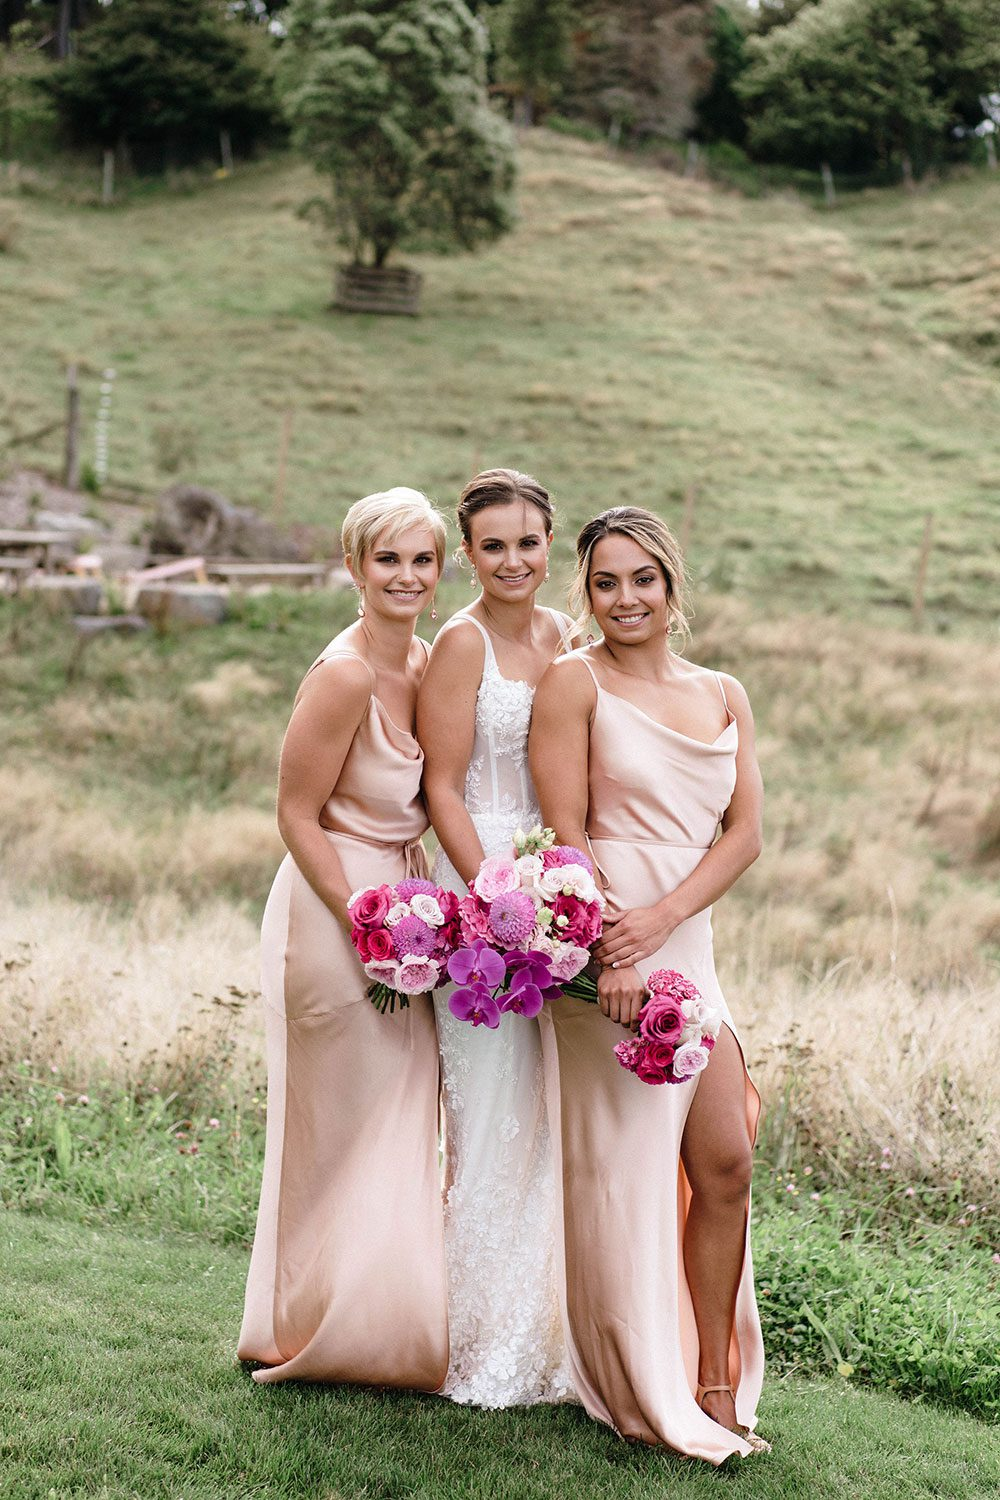 Bride wears bespoke E'More lace gown with boned bodice with hand beaded flower applique and full lace train by Auckland wedding dress maker Vinka designs - with bridesmaids and bouquets in field